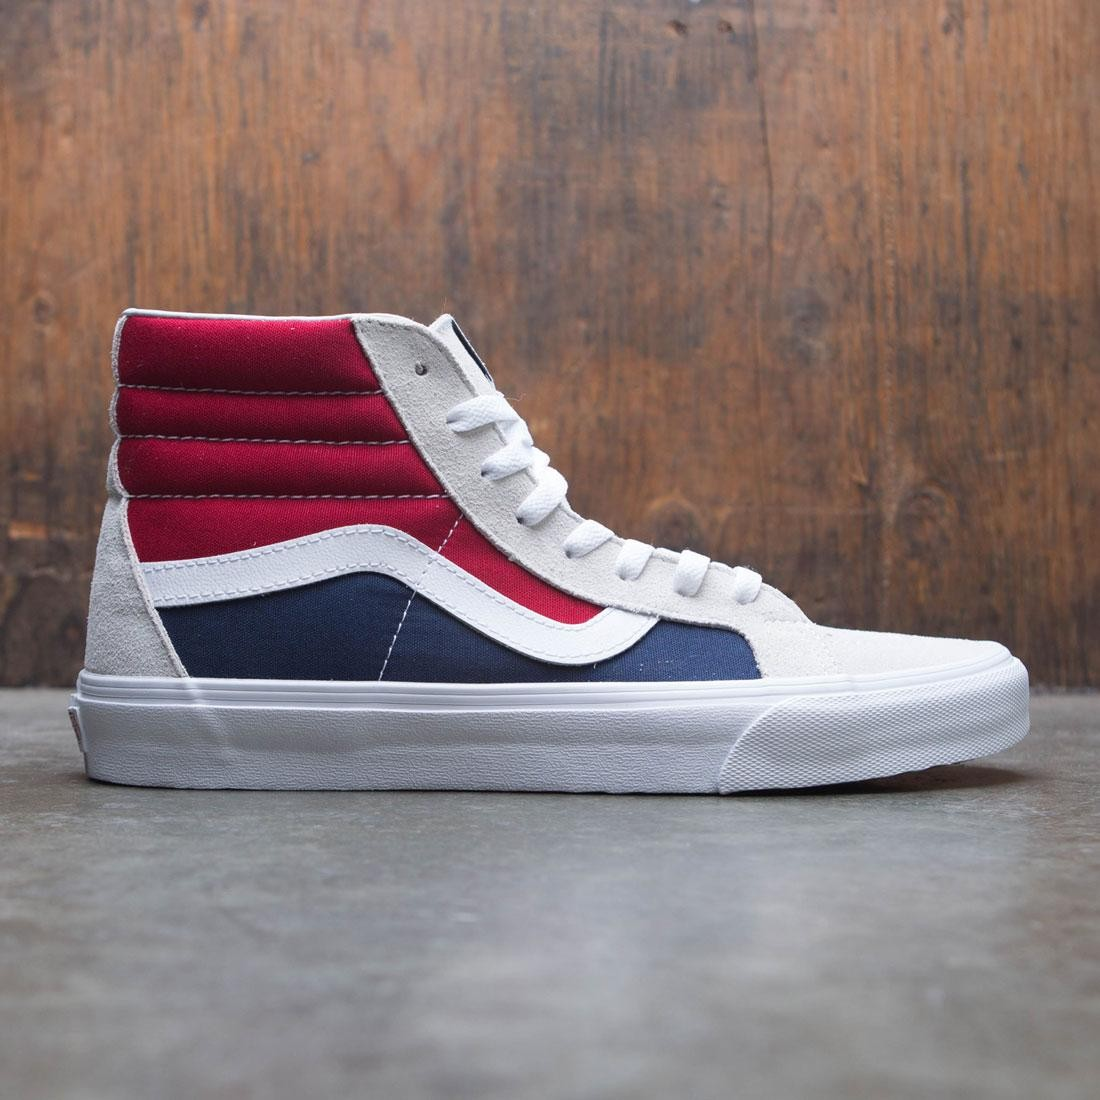 Vans Men SK8-Hi Reissue - Block red blue white fceafa5f6